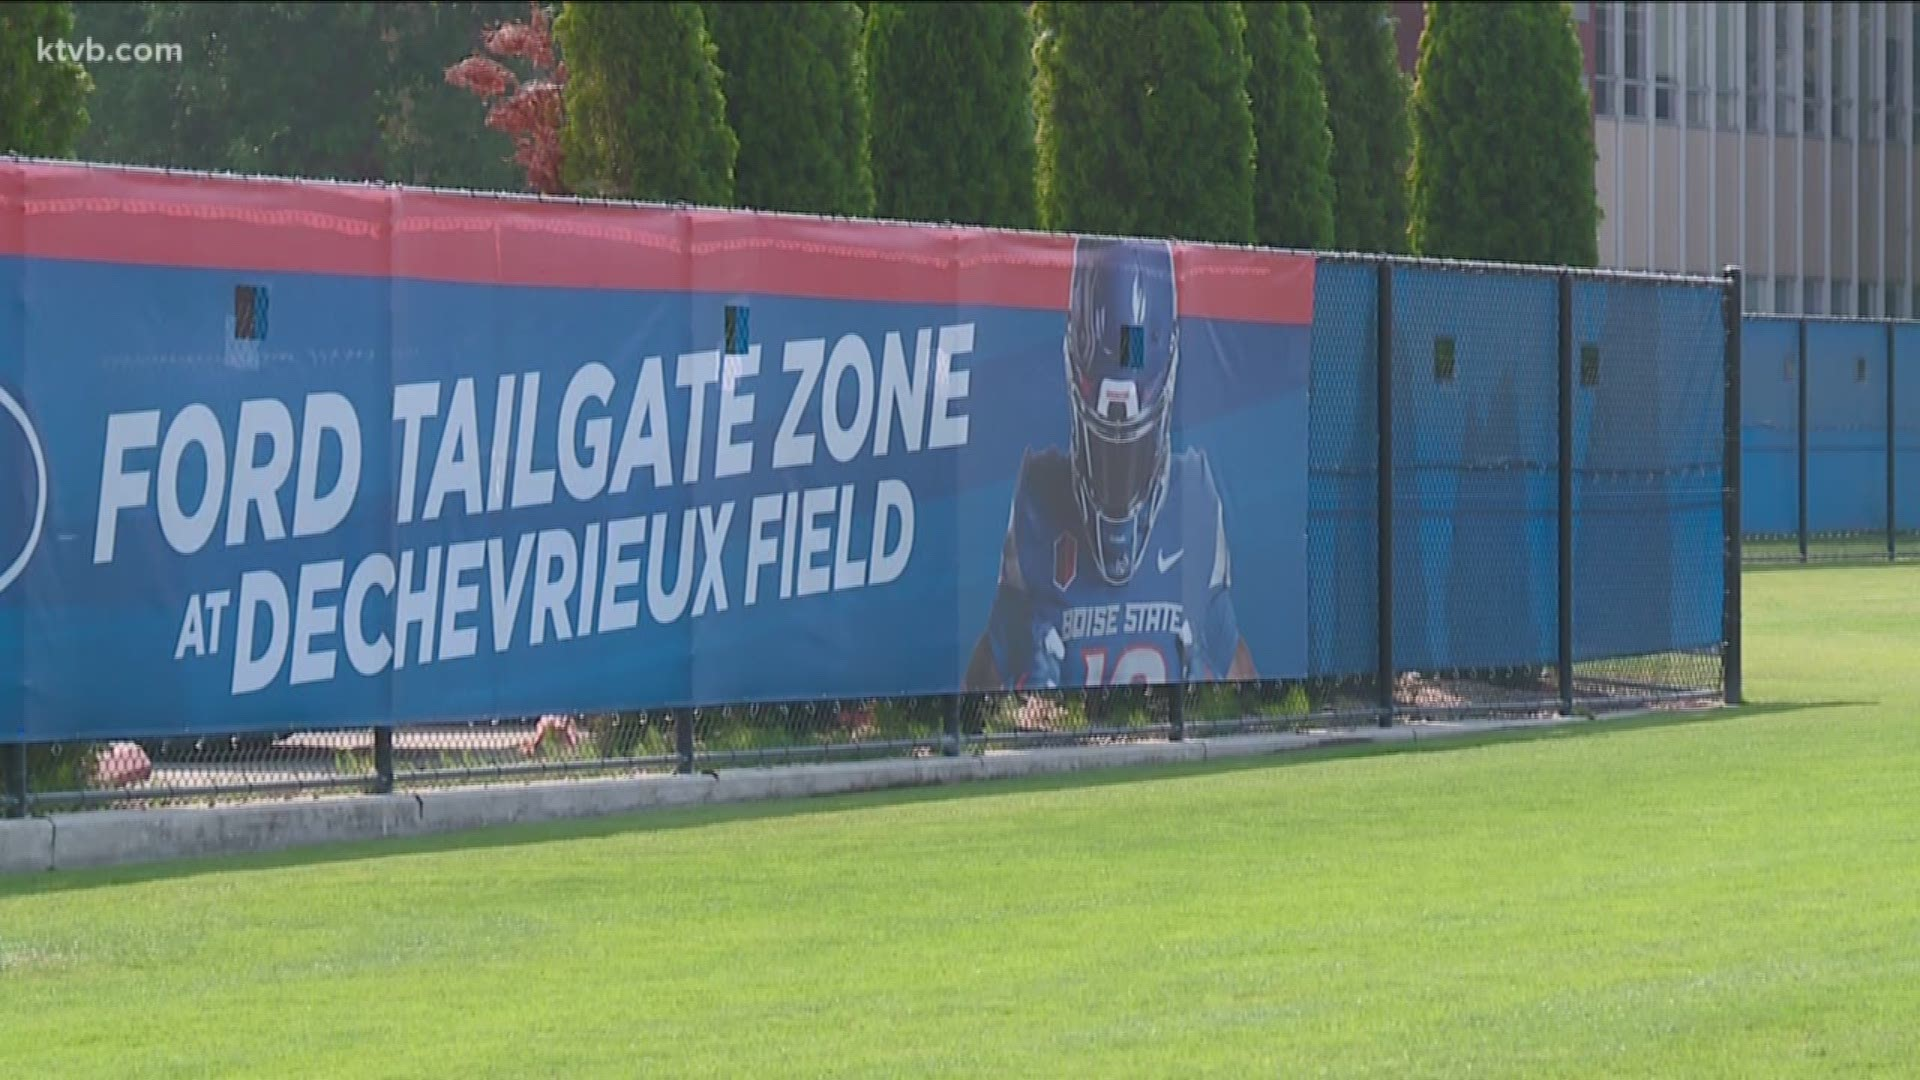 Boise State Boosting Bronco Football Fans Experience With Ford Tailgate Zone Ktvb Com